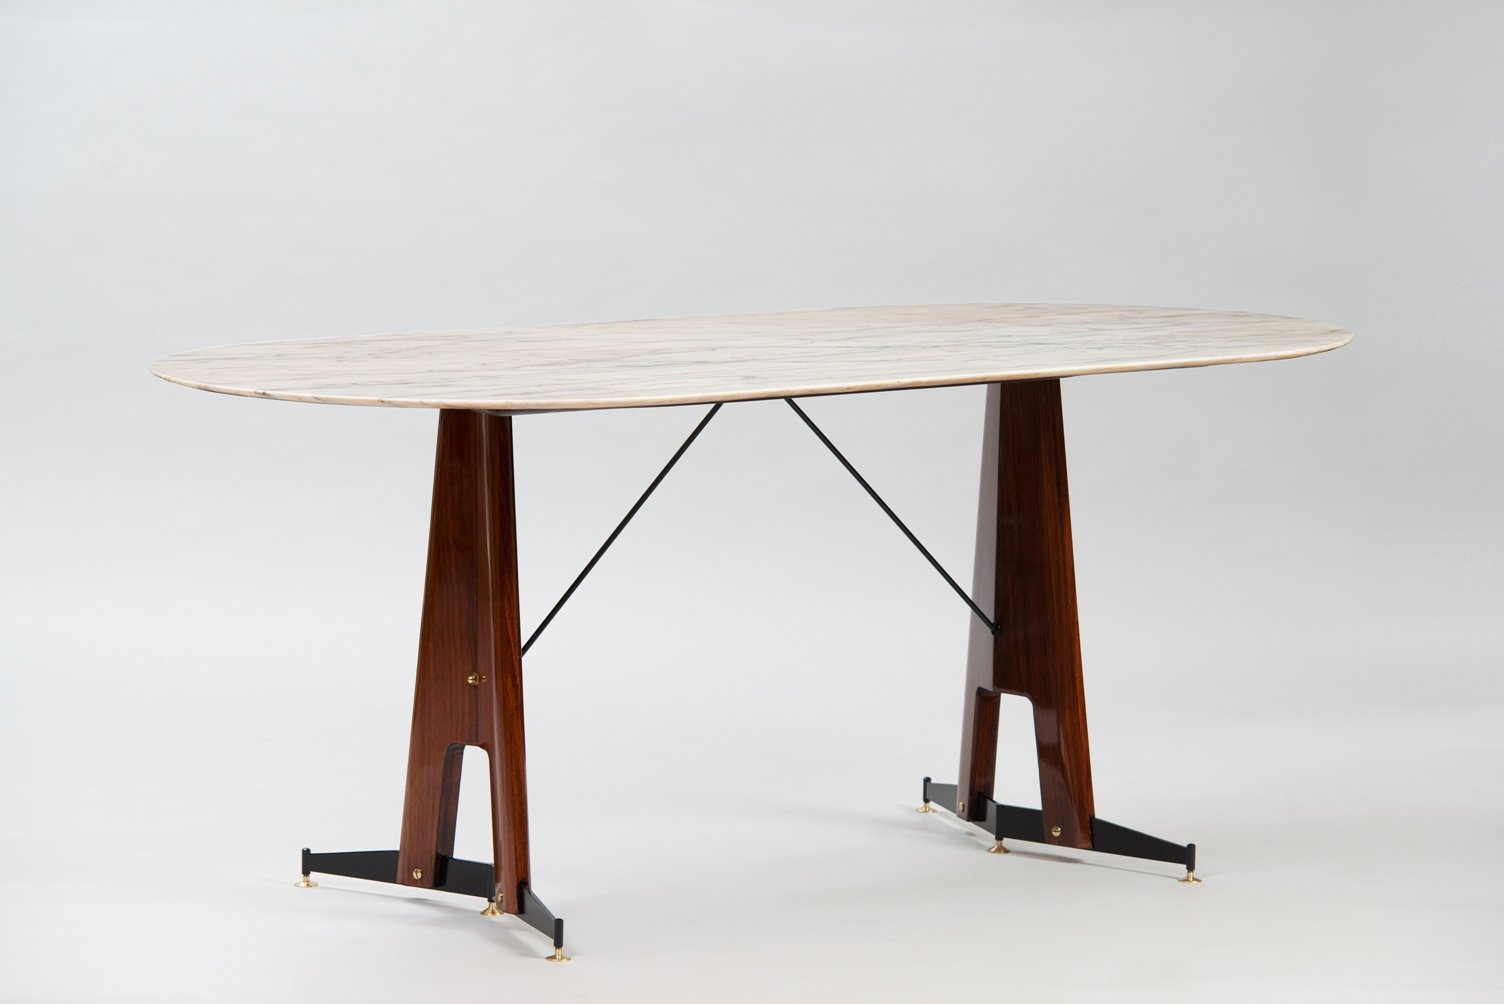 Table salle a manger marbre design for Table de salle a manger retractable